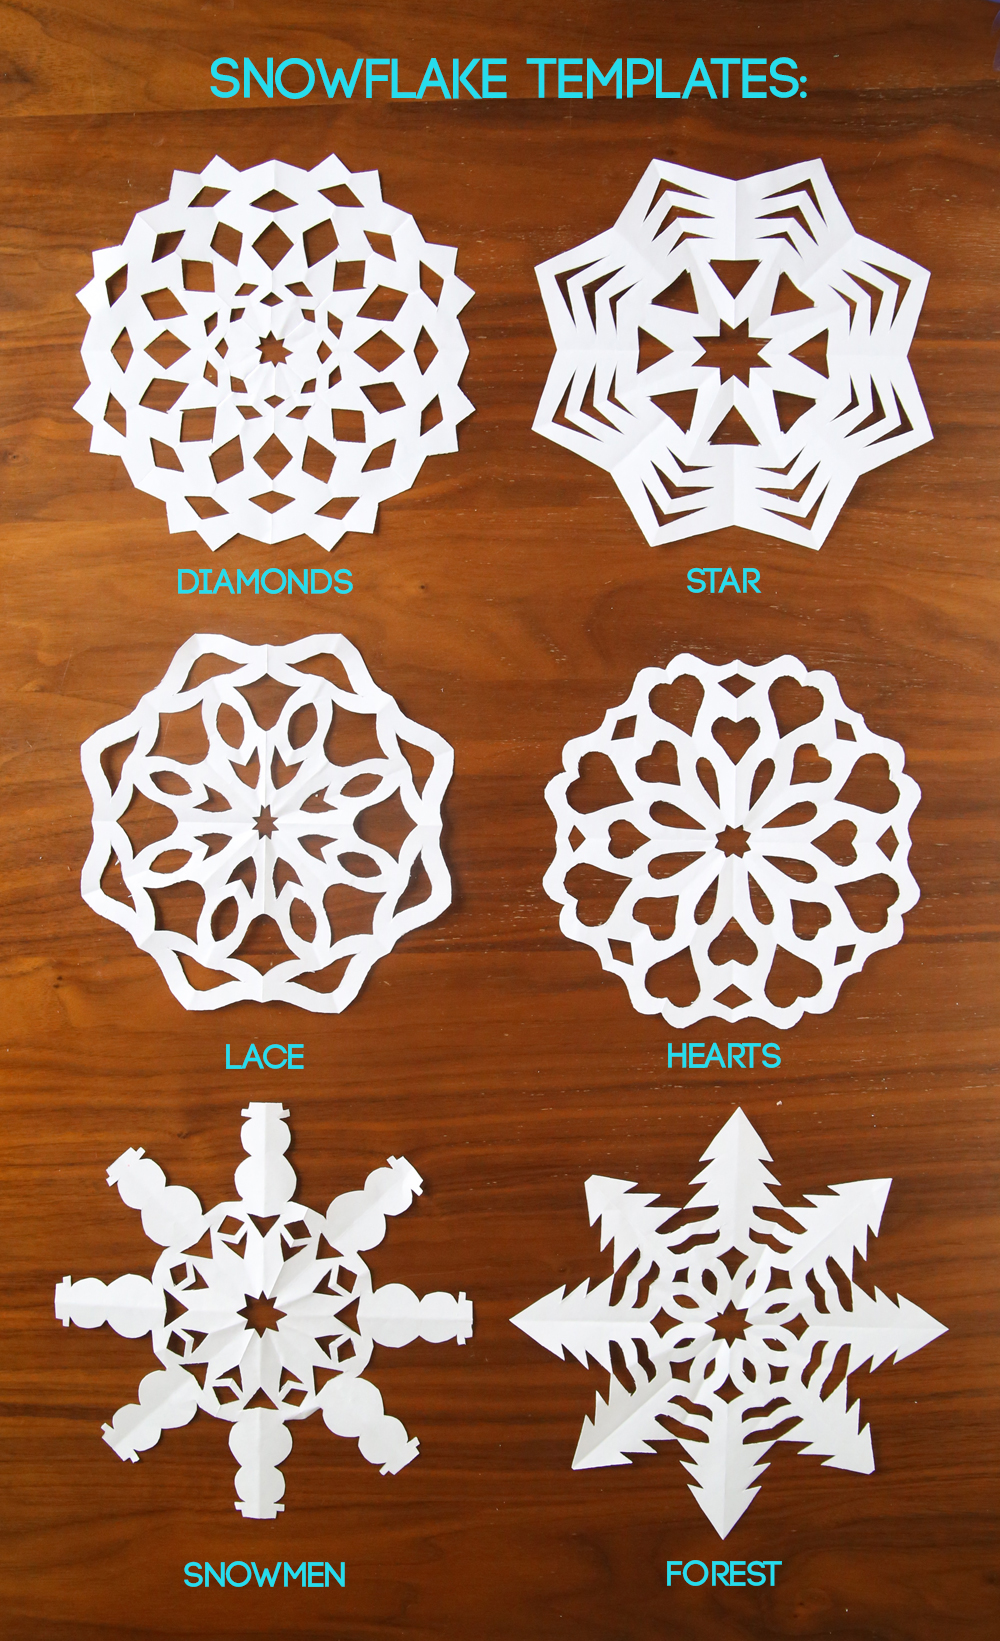 how to cut snowflakes video tutorial templates it s cutting out snowflakes is one of our favorite holiday traditions learn how to cut snowflakes